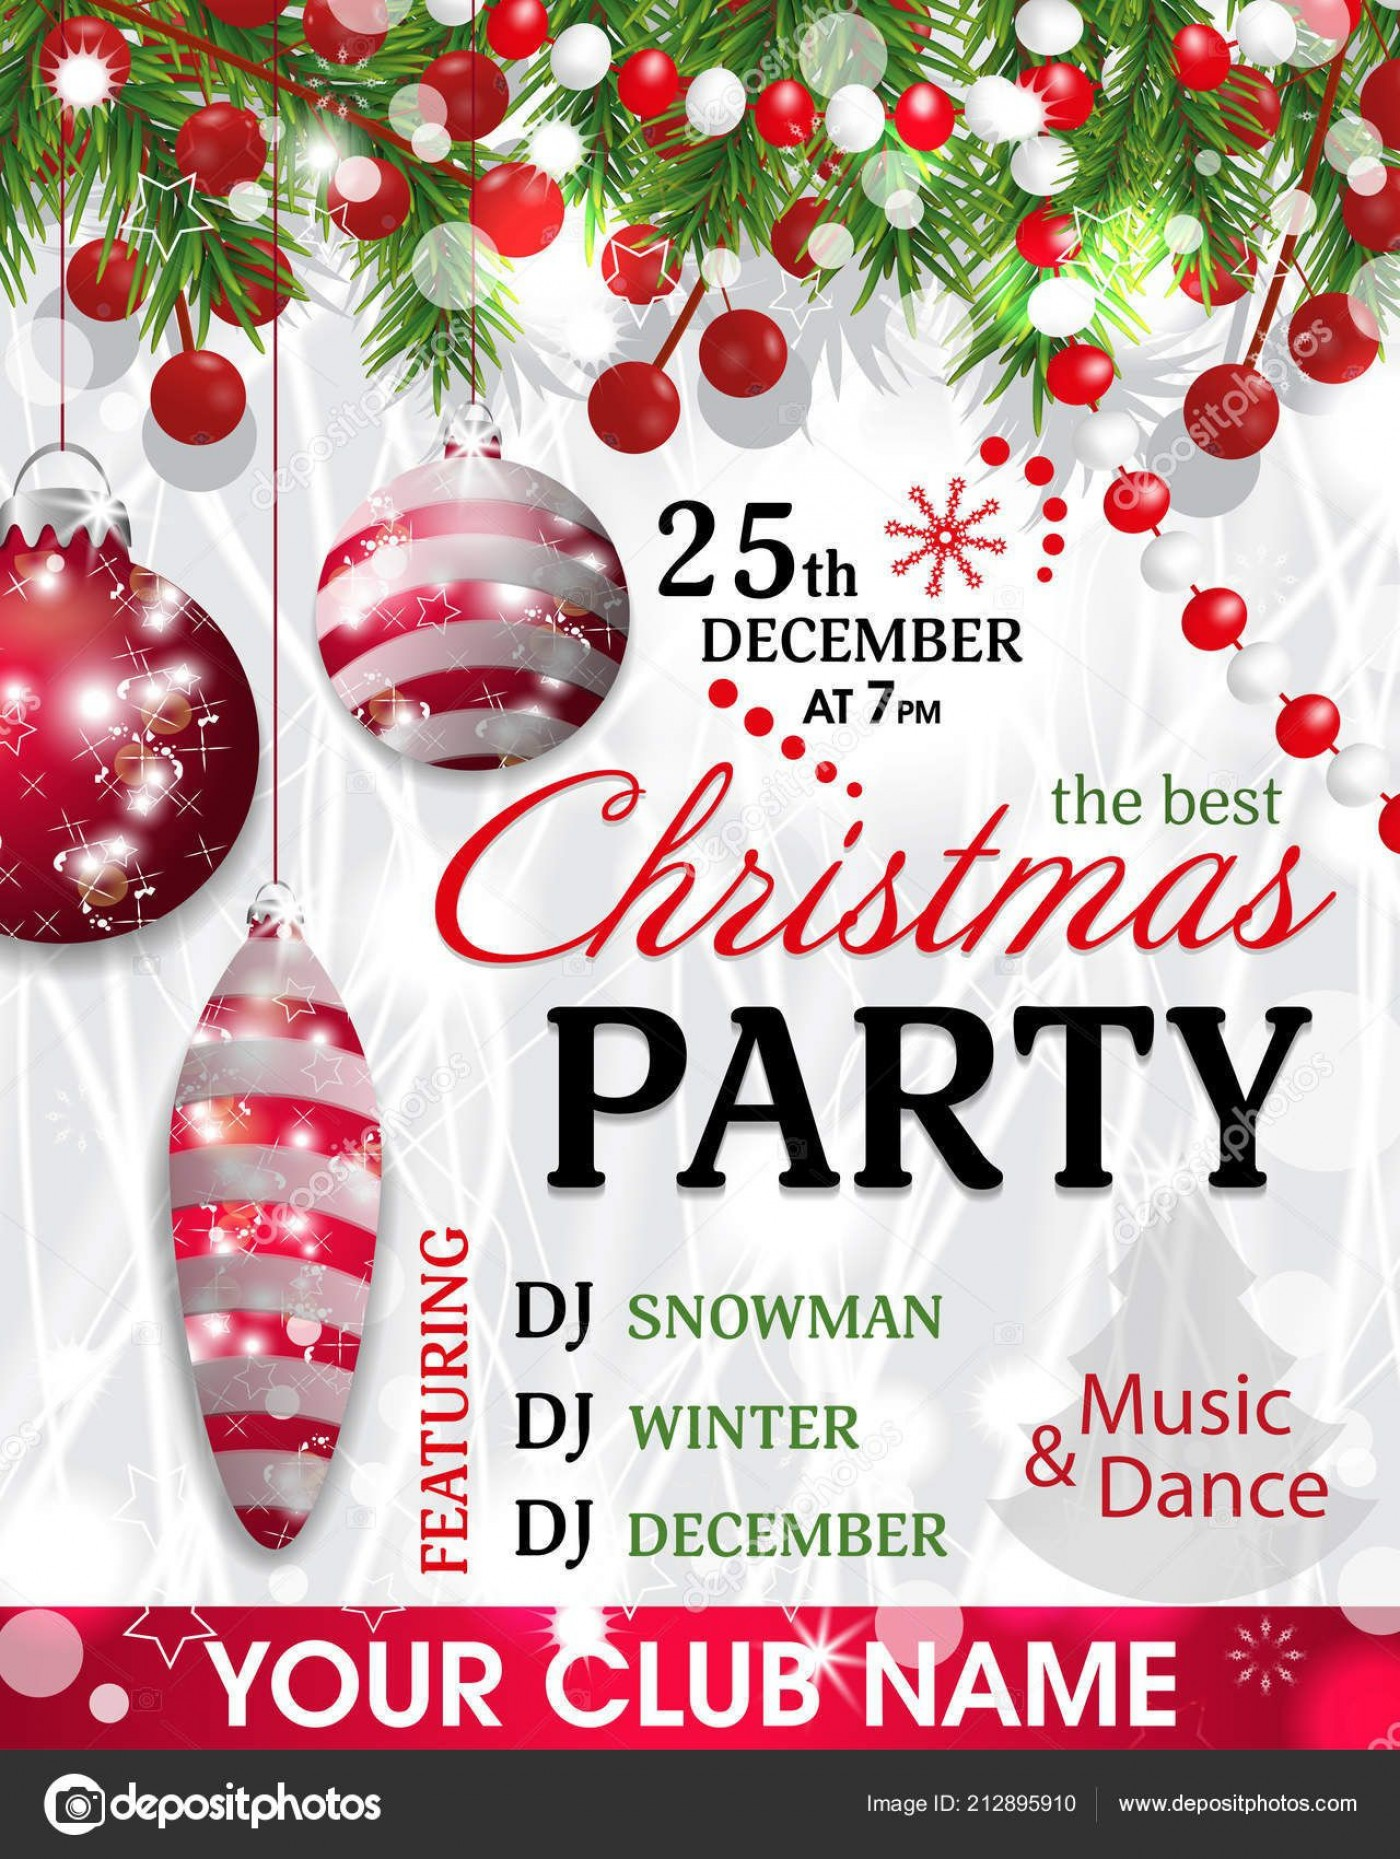 005 Unbelievable Christma Party Invitation Template Design  Funny Free Download Word Card1400